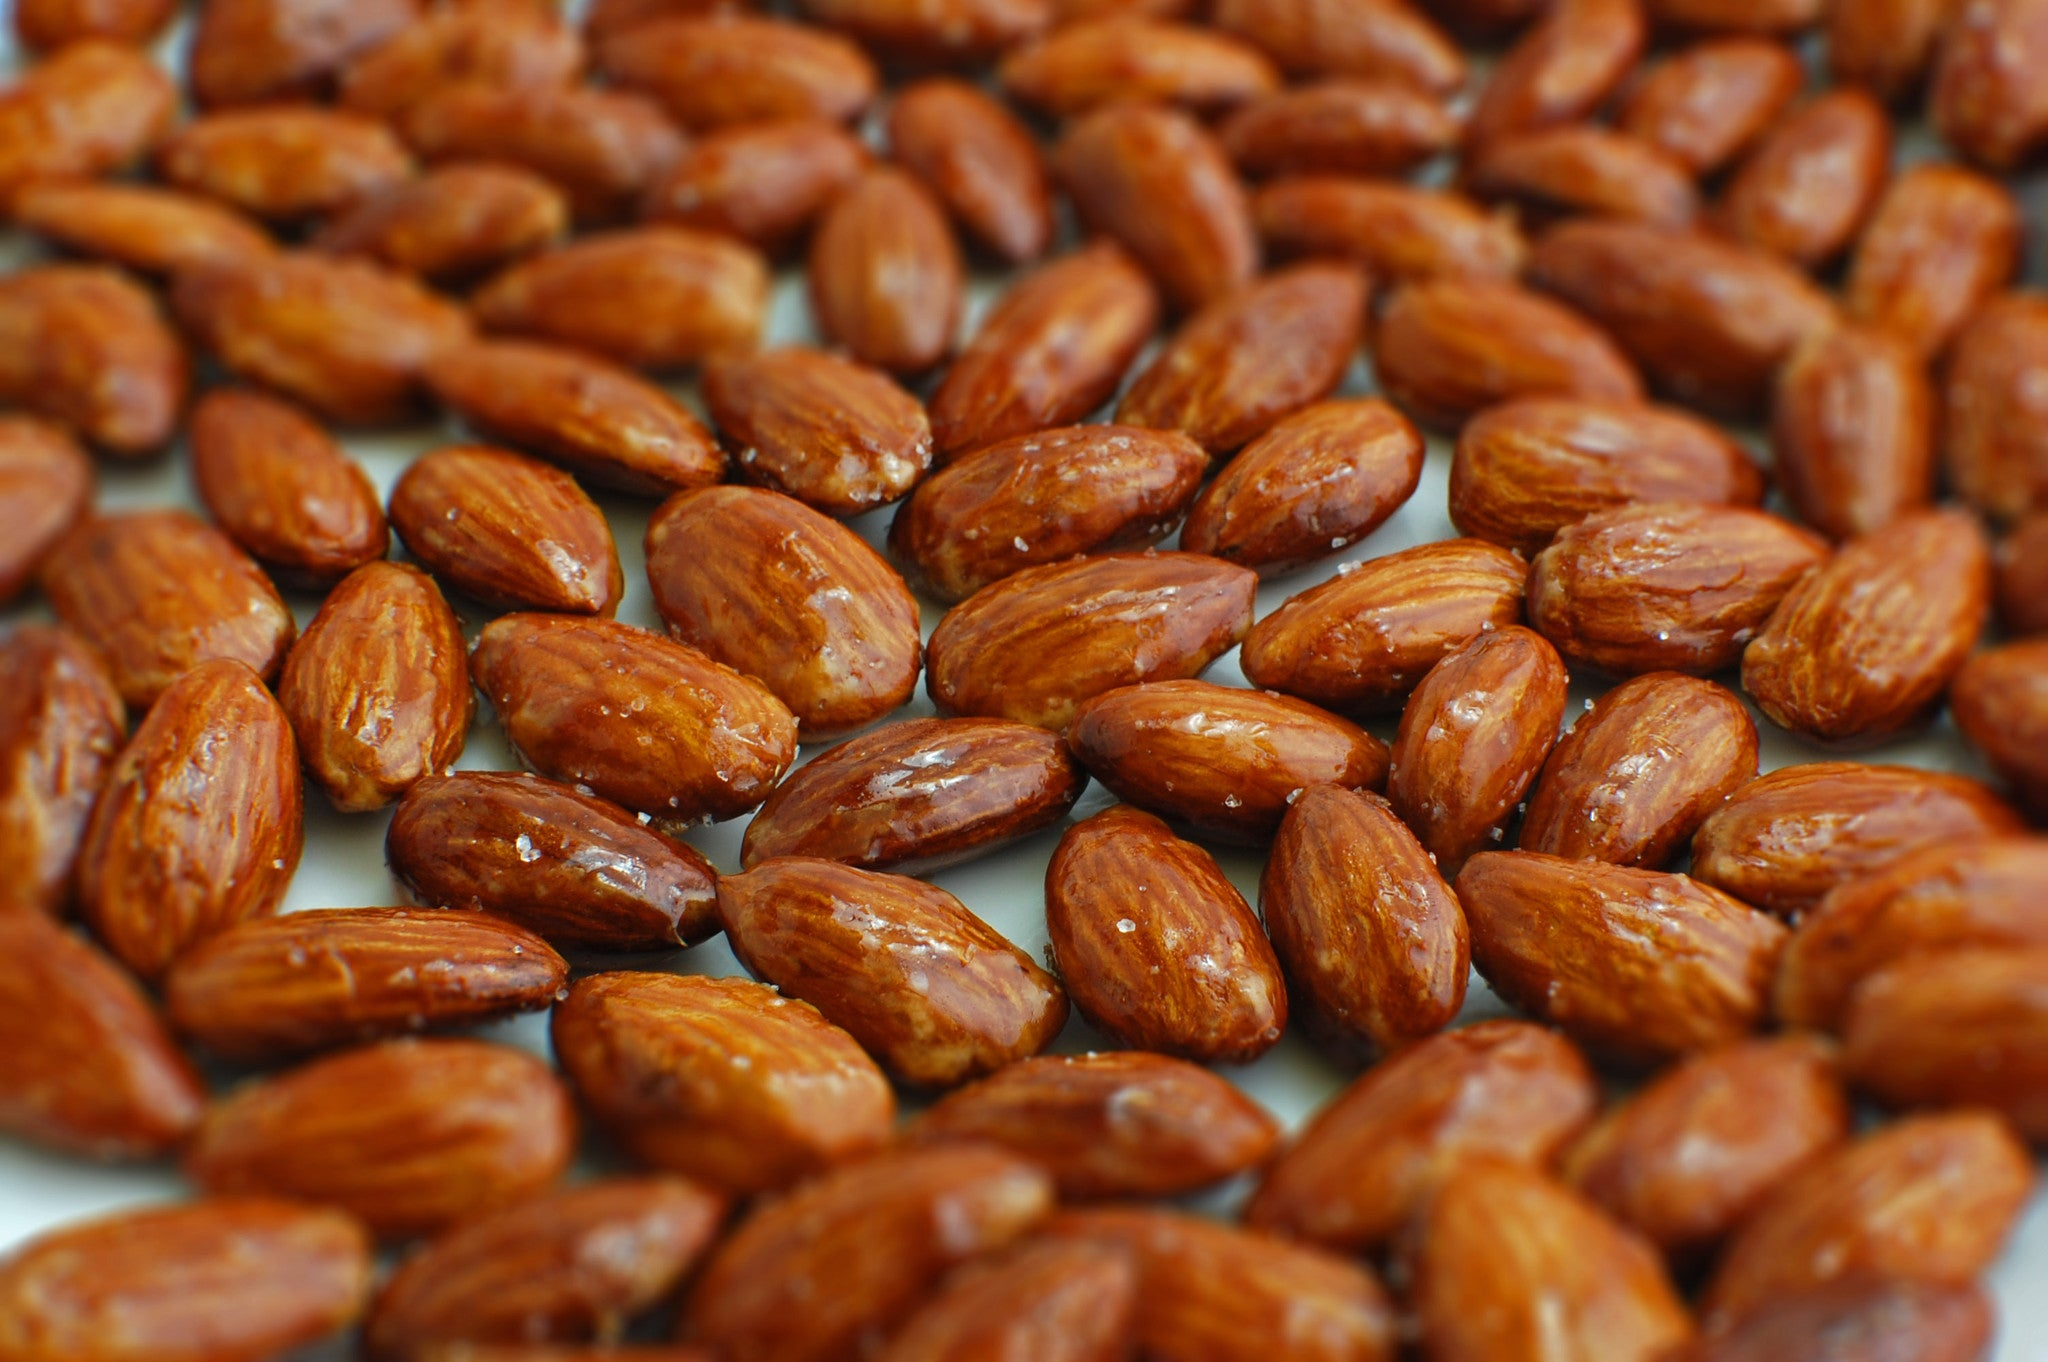 Handcrafted Caramelized Almonds